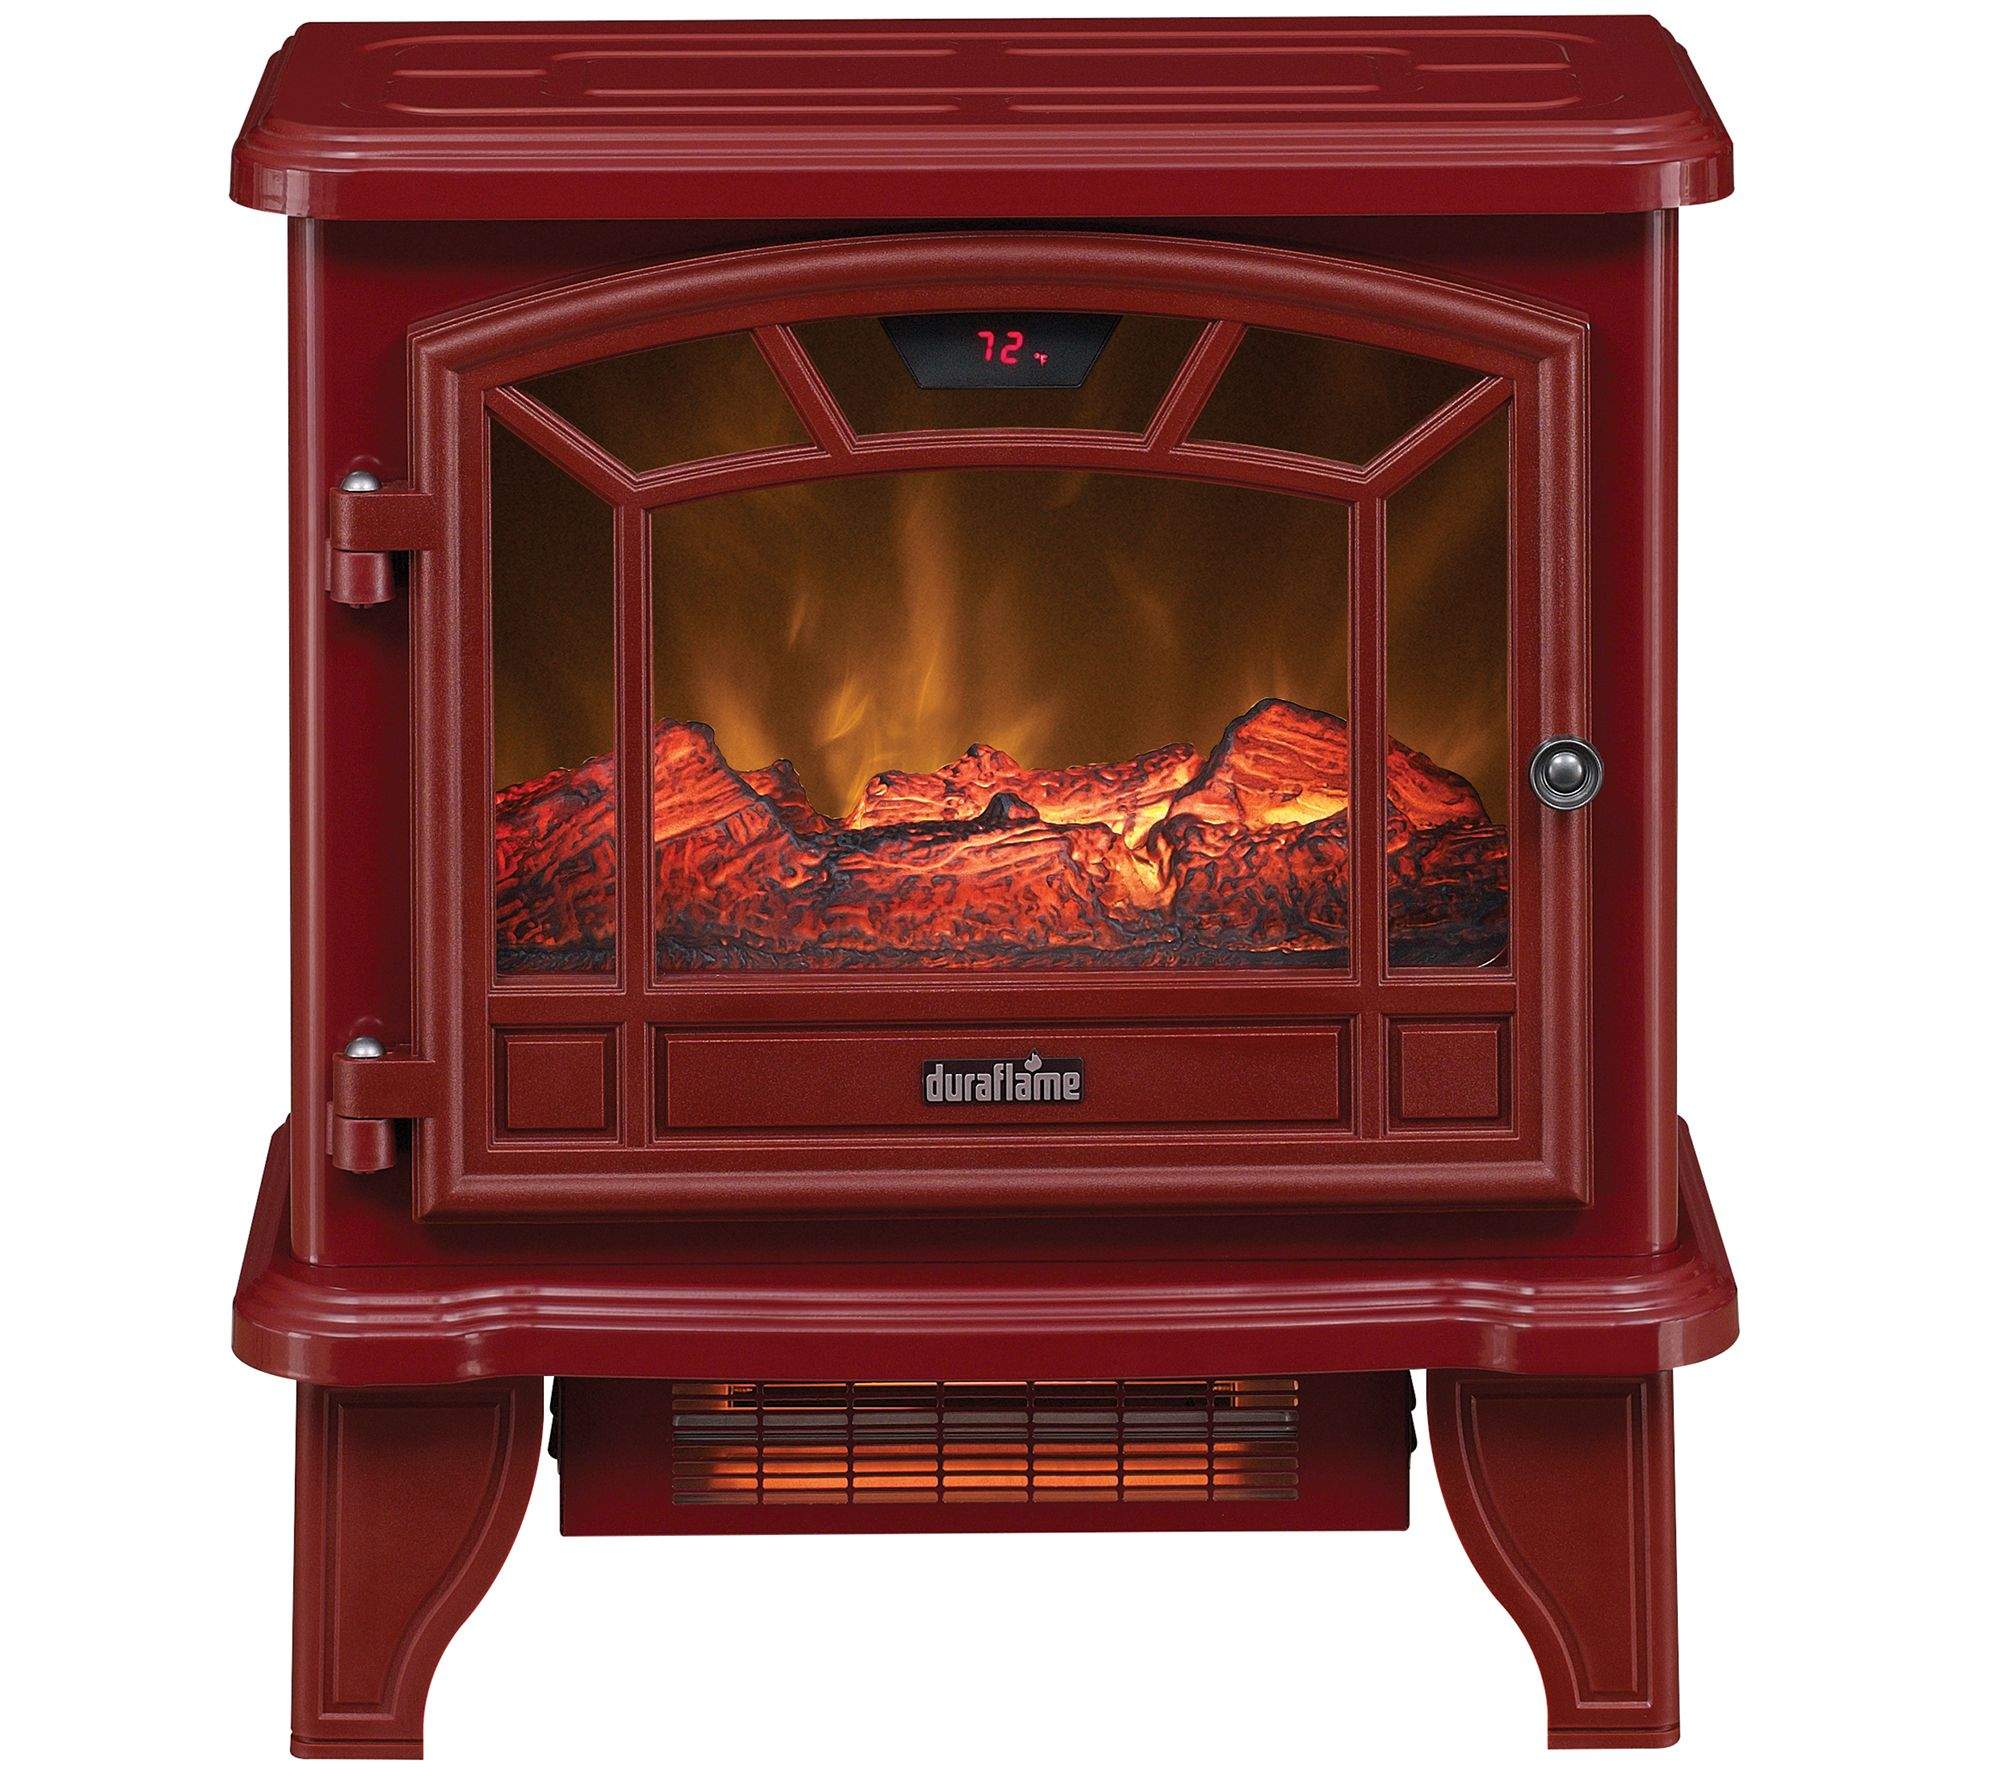 Duraflame Infrared Stove Heater With Remote Control Page